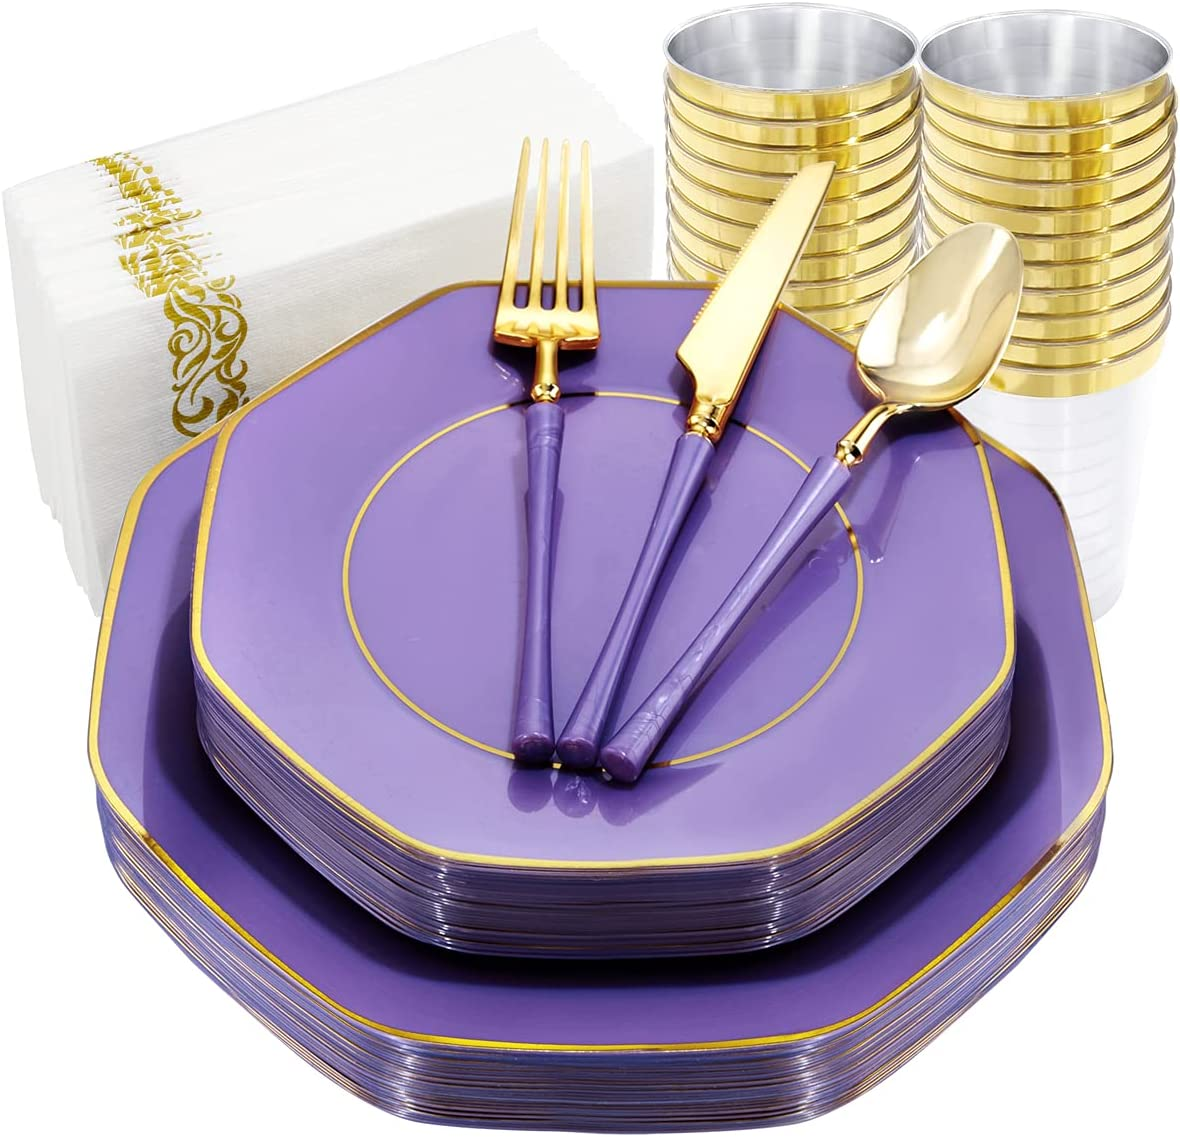 KIRE 20 Guests Purple Plastic Plates Disposa with Rim Gold Albuquerque Mall Ranking TOP17